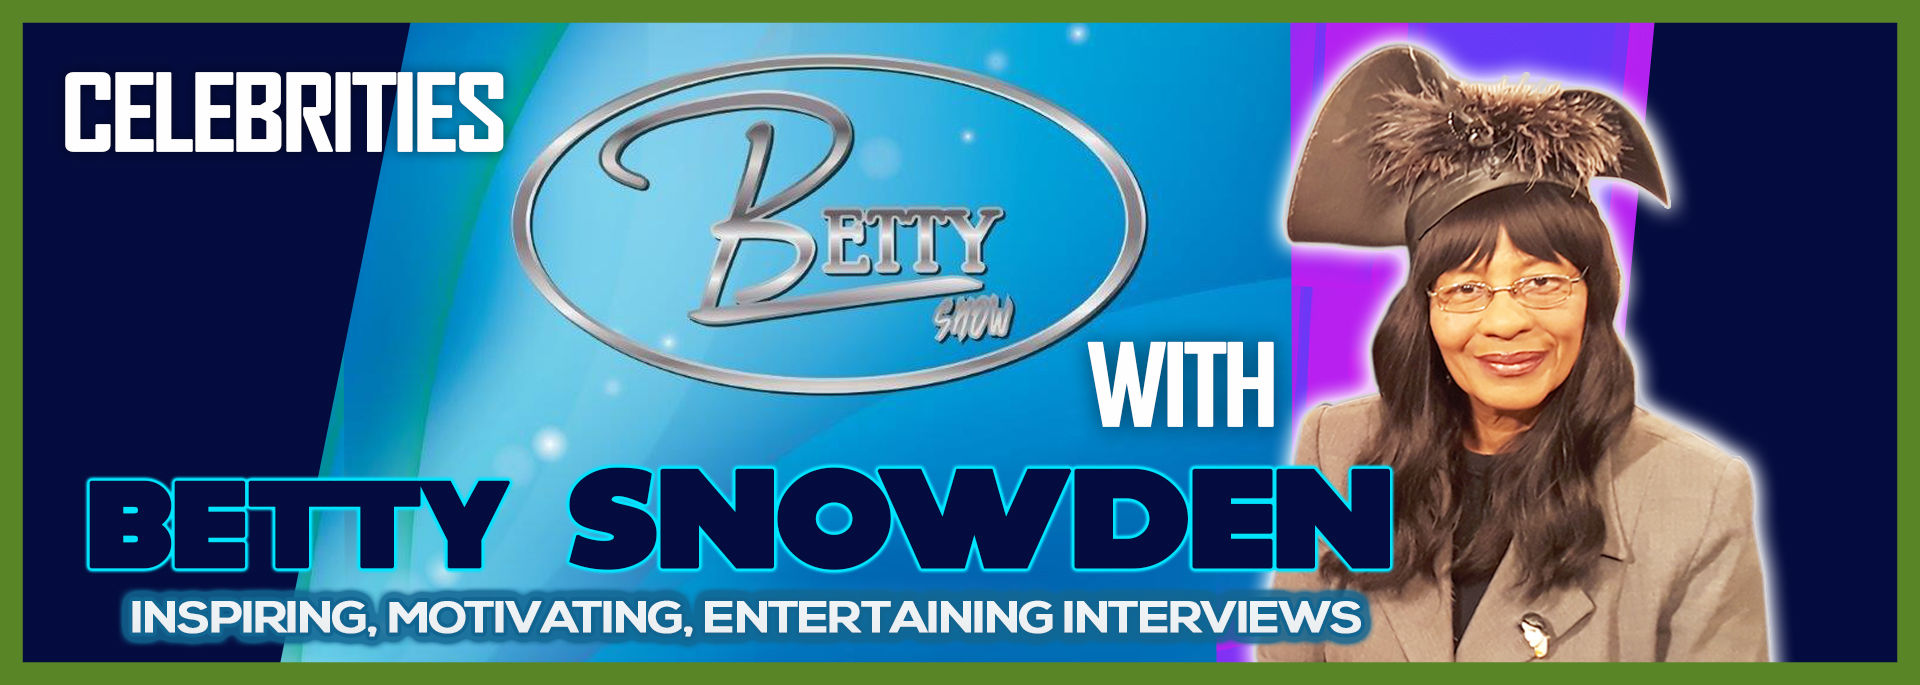 THE BETTY SNOWDEN SHOW channel